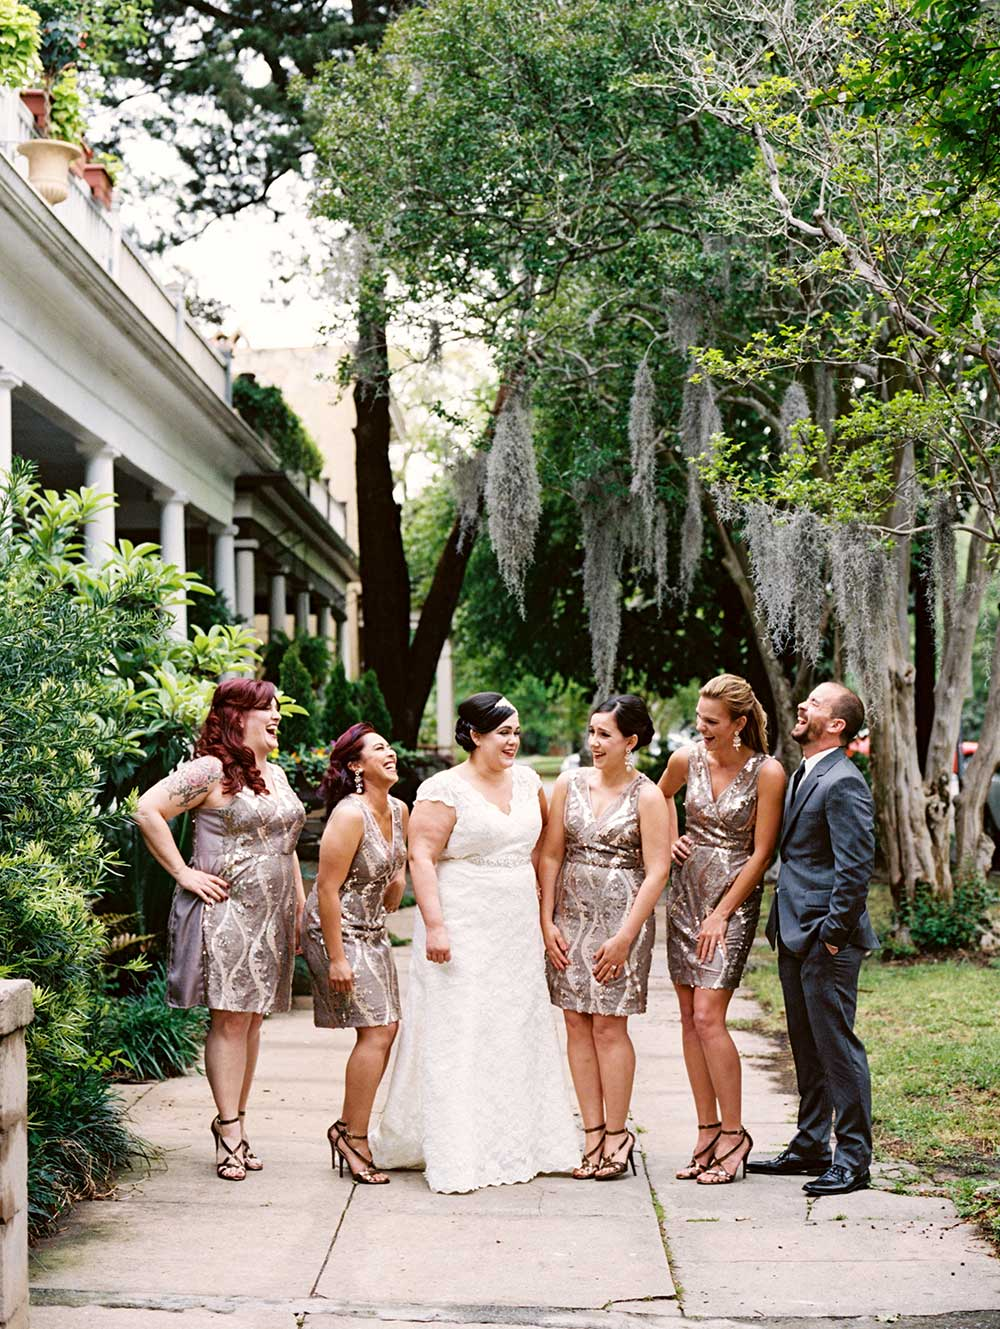 Vintage Glam Wedding at The Savannah Roundhouse Railroad Museum in ...